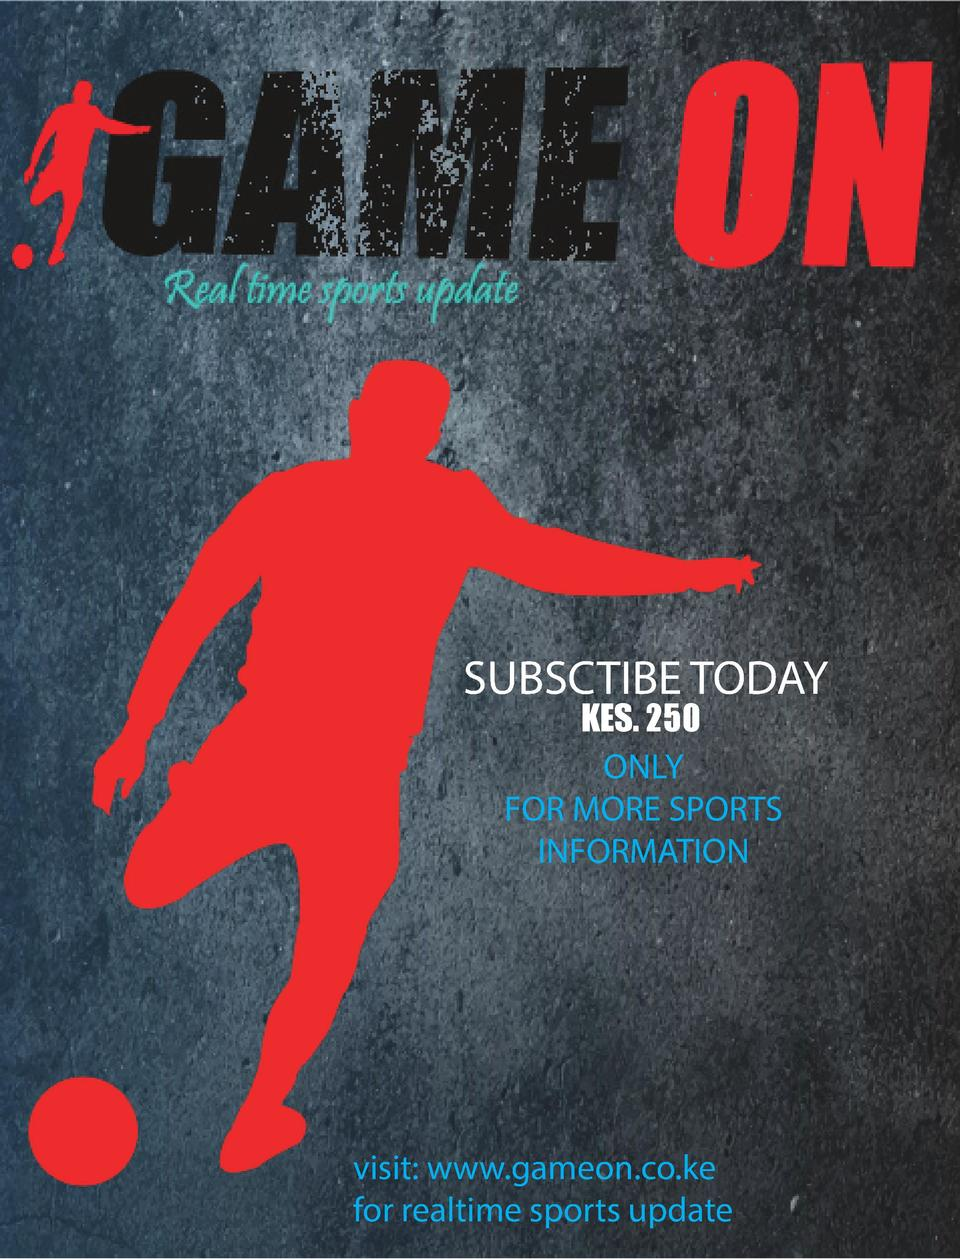 SUBSCTIBE TODAY KES. 250 ONLY FOR MORE SPORTS INFORMATION  Game On  Real time Sports  visit  www.gameon.co.ke for realtime...